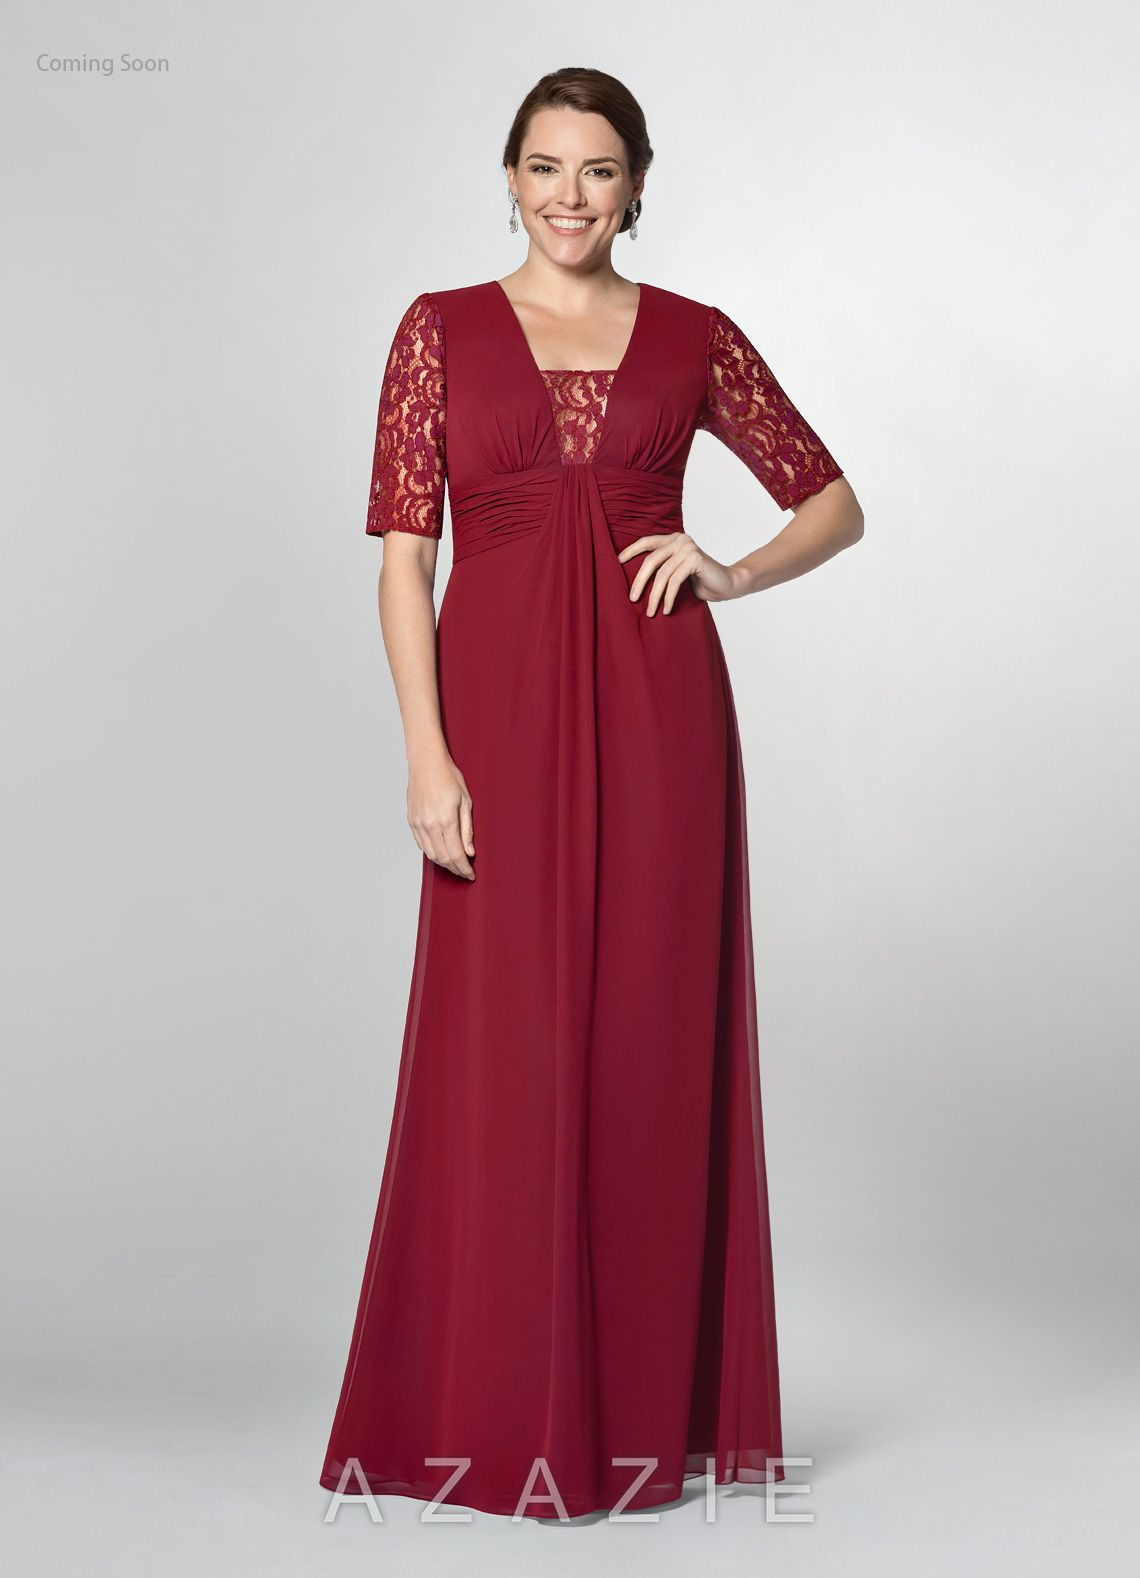 a22efe1bede Azazie Streep MBD Mother Of The Bride Dress